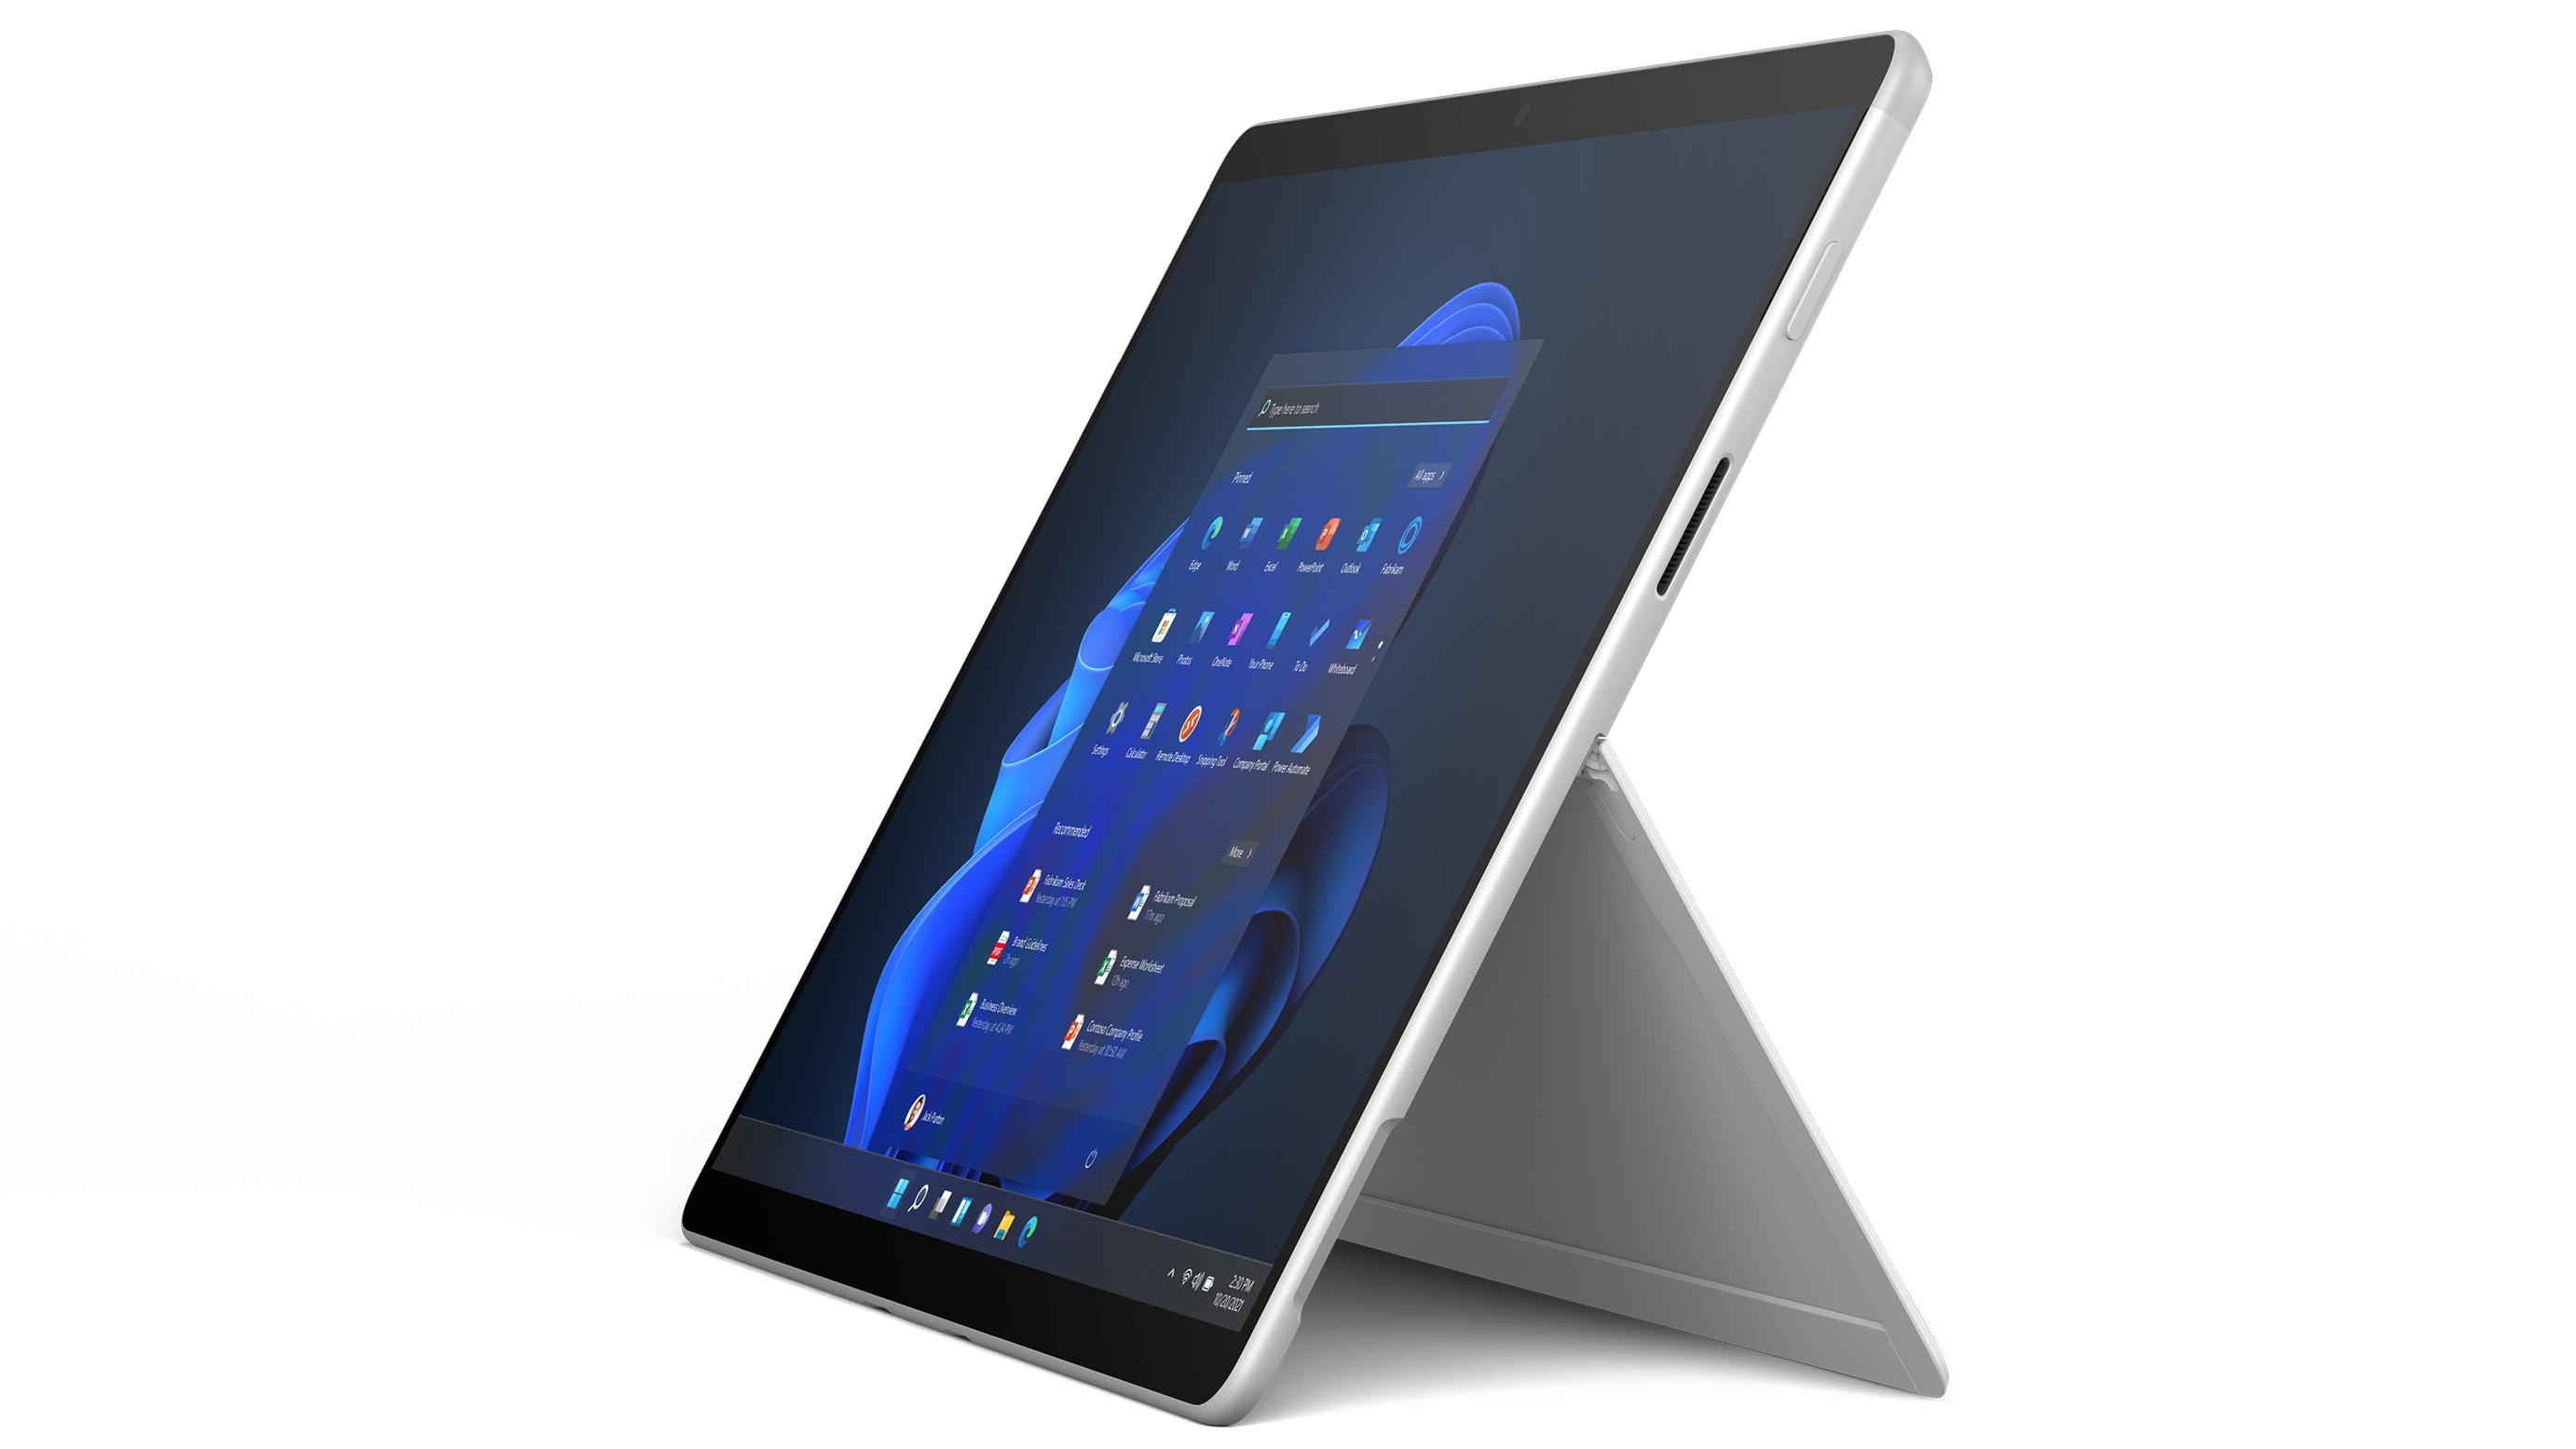 Surface Pro X for Business - Platinum, Microsoft SQ® 2 - LTE, 16GB RAM, 256GB SSD Help your customers stay one step ahead. Surface Pro X for Business makes quick work of every task with optional Gigabit-speed LTE,¹ tablet-to-laptop flexibility and built-in security.